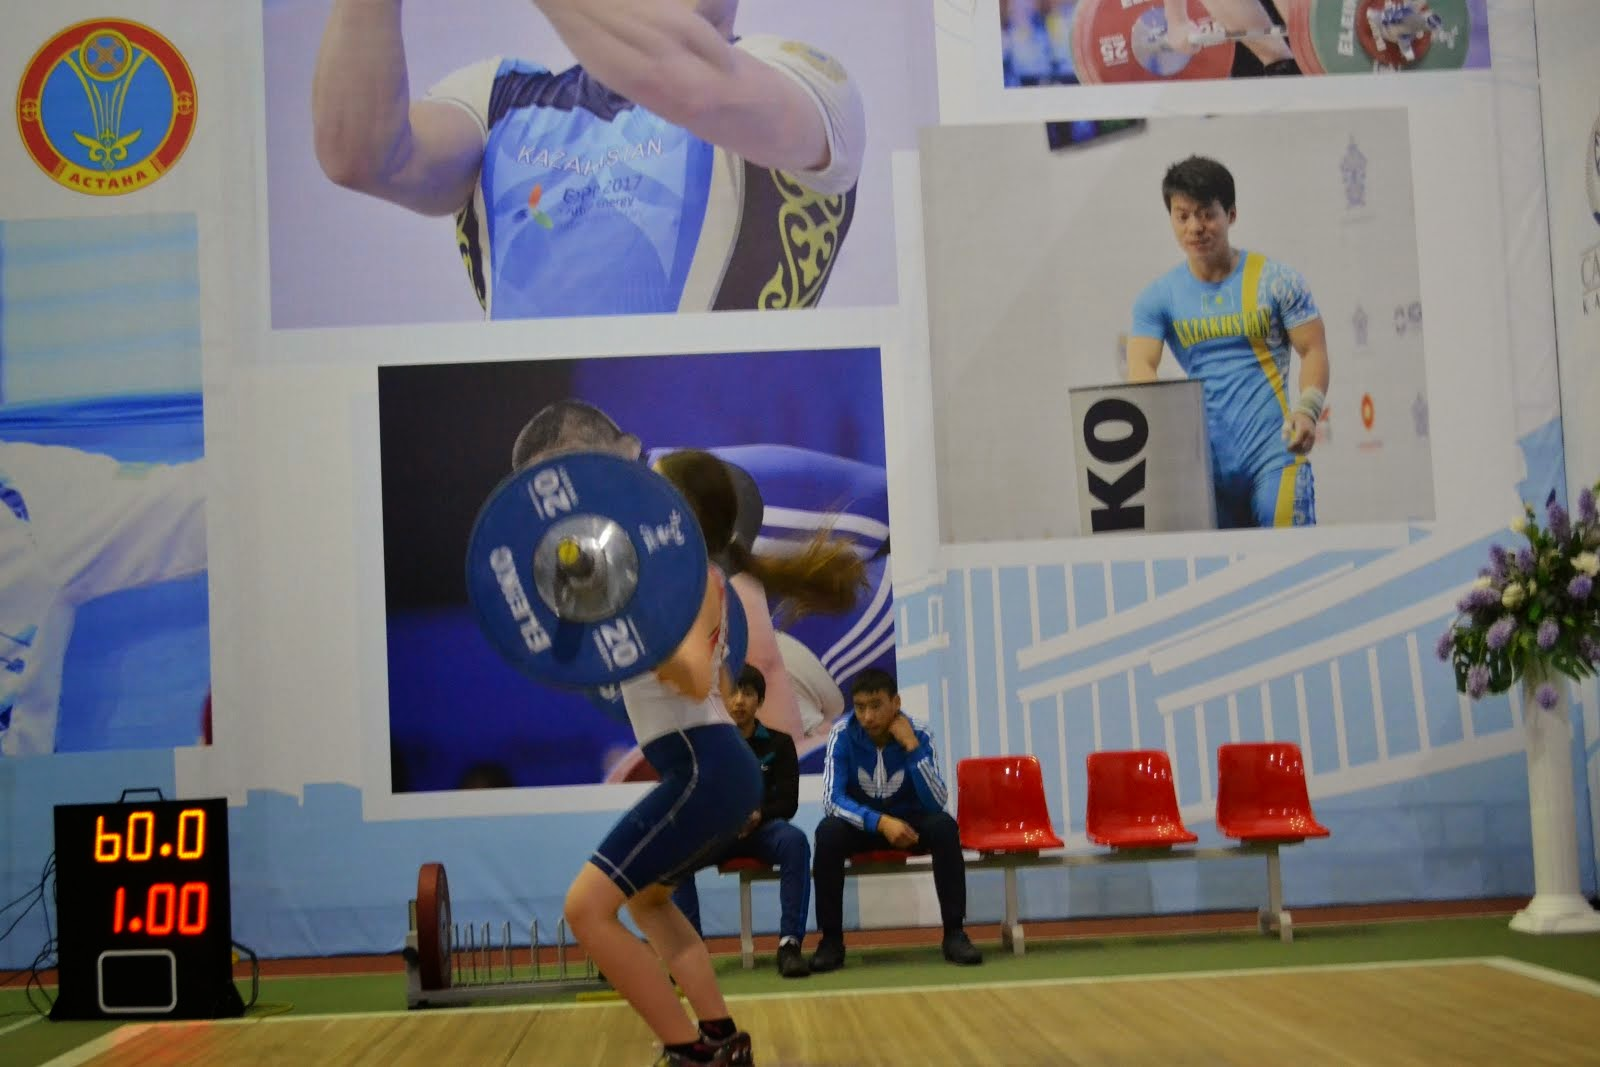 LG Gwendolyn Rojas at the 2015 Kazakhstan Youth Nationals